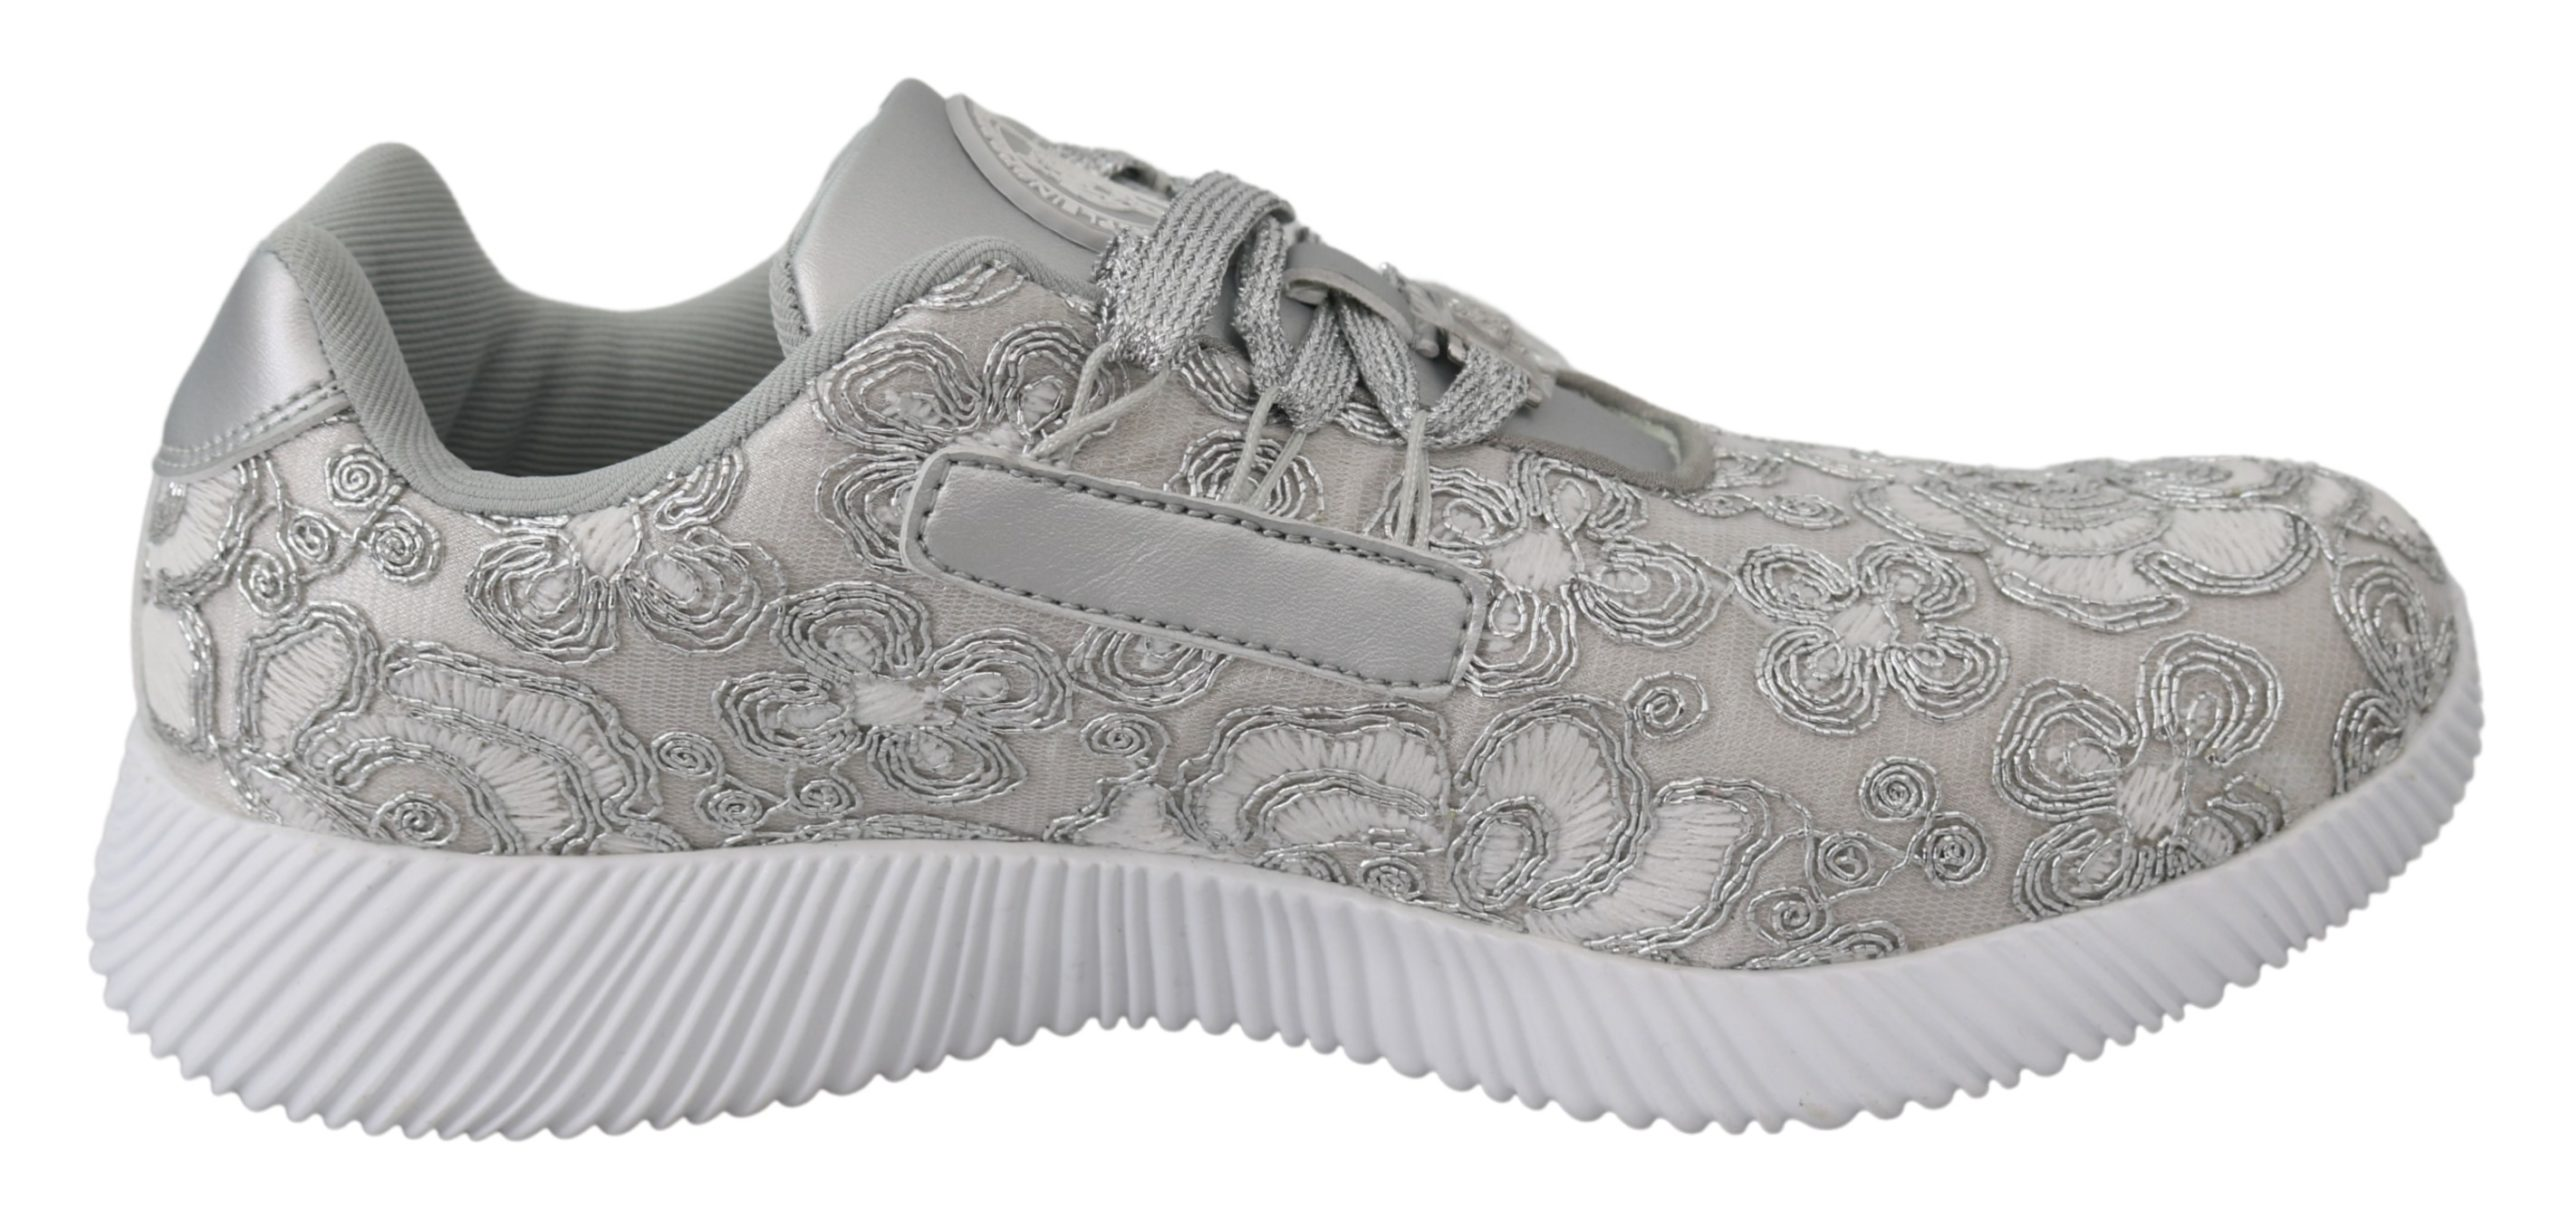 Silver Polyester Runner Joice Sneakers Shoes - EU40/US10